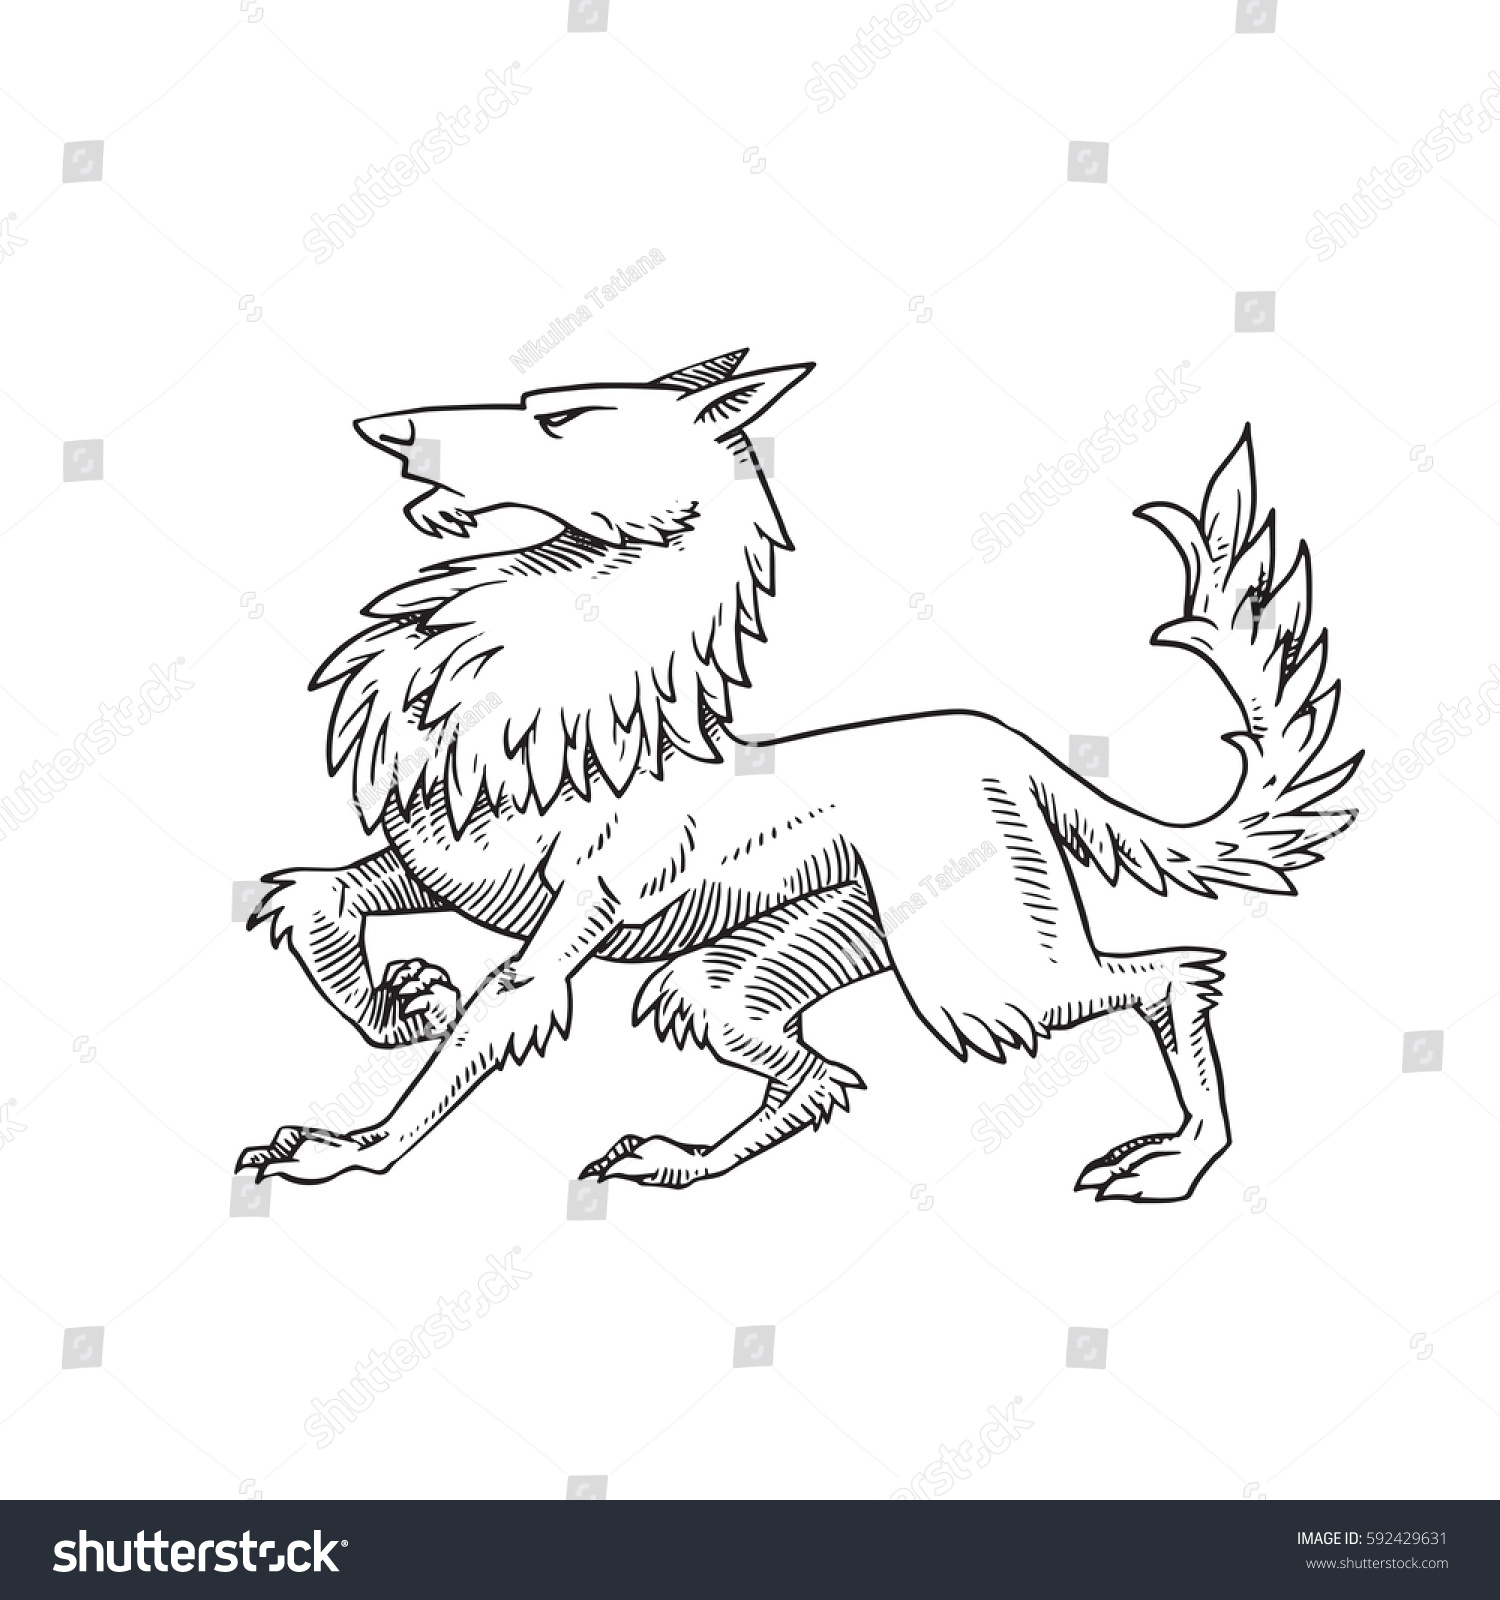 How to breed heraldic dragon - Vector Image Of A Heraldic Formidable Wolf Standing Turn Left On A White Background Coat